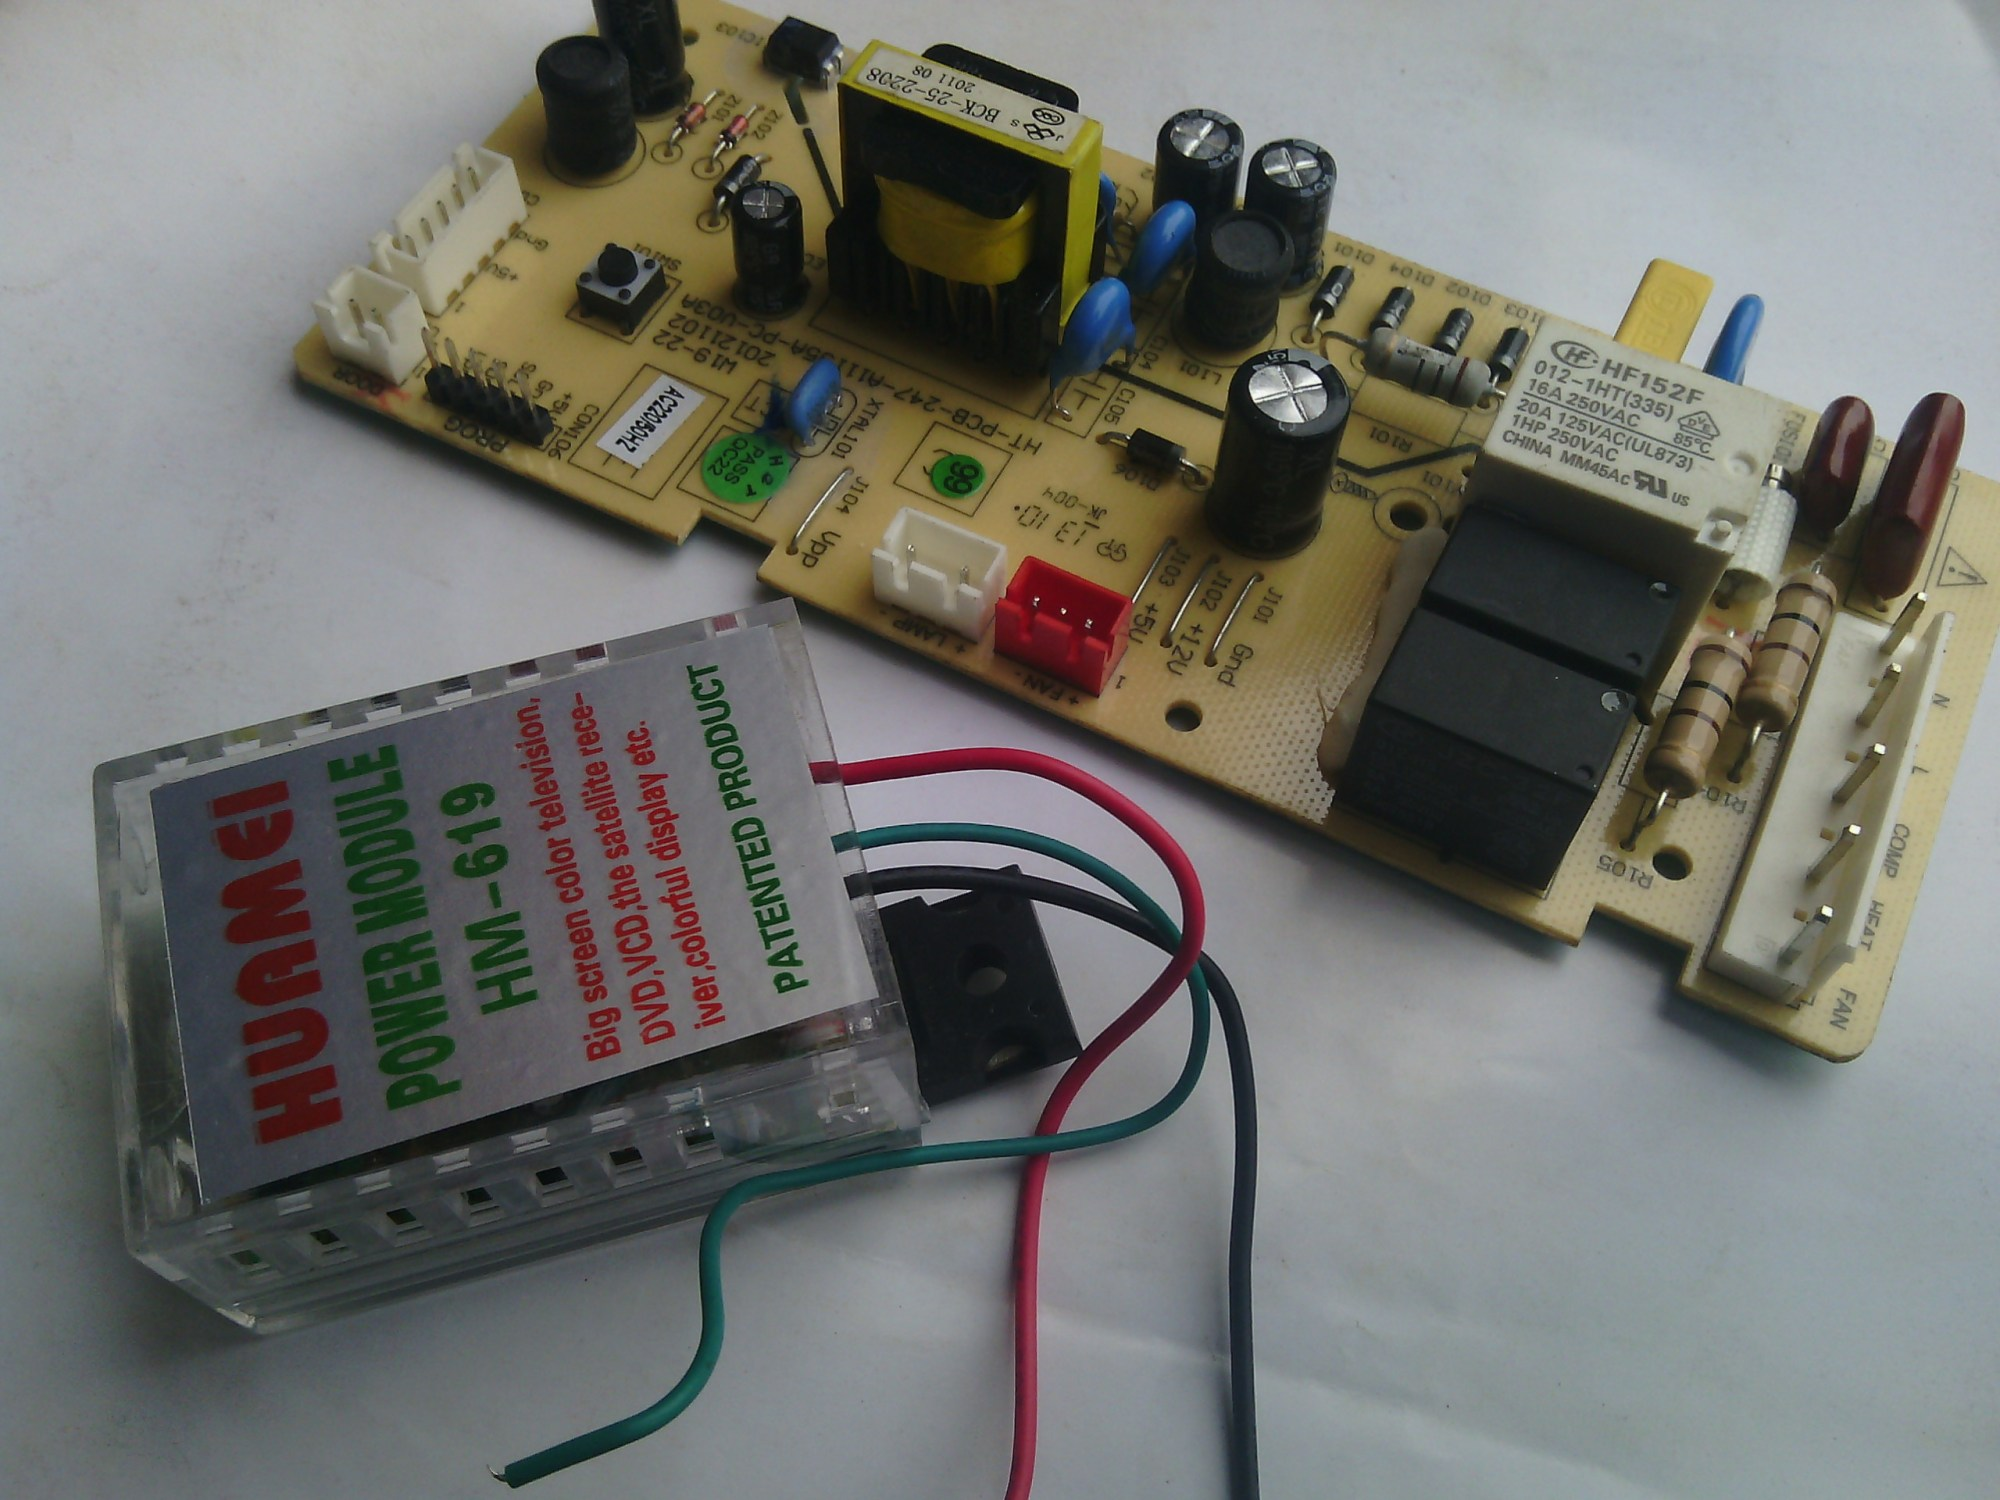 hight resolution of to connect the module neglect the green wire connect the black wire to the